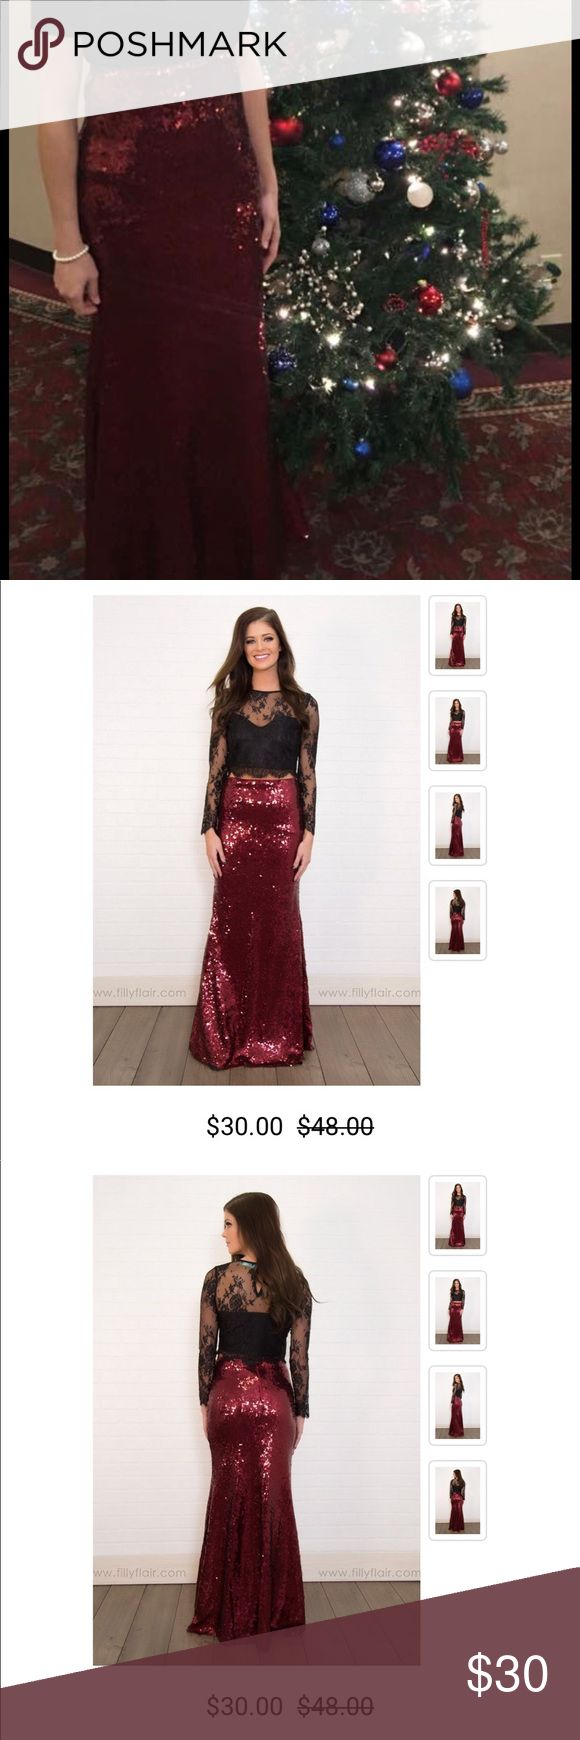 Filly Flair Red Holiday Sequin Skirt New Medium ❤️ Gorgeous red sequin skirt from Filly Flair! Never worn! Perfect for that holiday party! ❤️❤️❤️  Buy 4 get 1 free! Lowest priced item is free! ❤️ I have lots of clearance items and beauty accessories to choose from! ❤️❤️❤️ Filly Flair Skirts Maxi